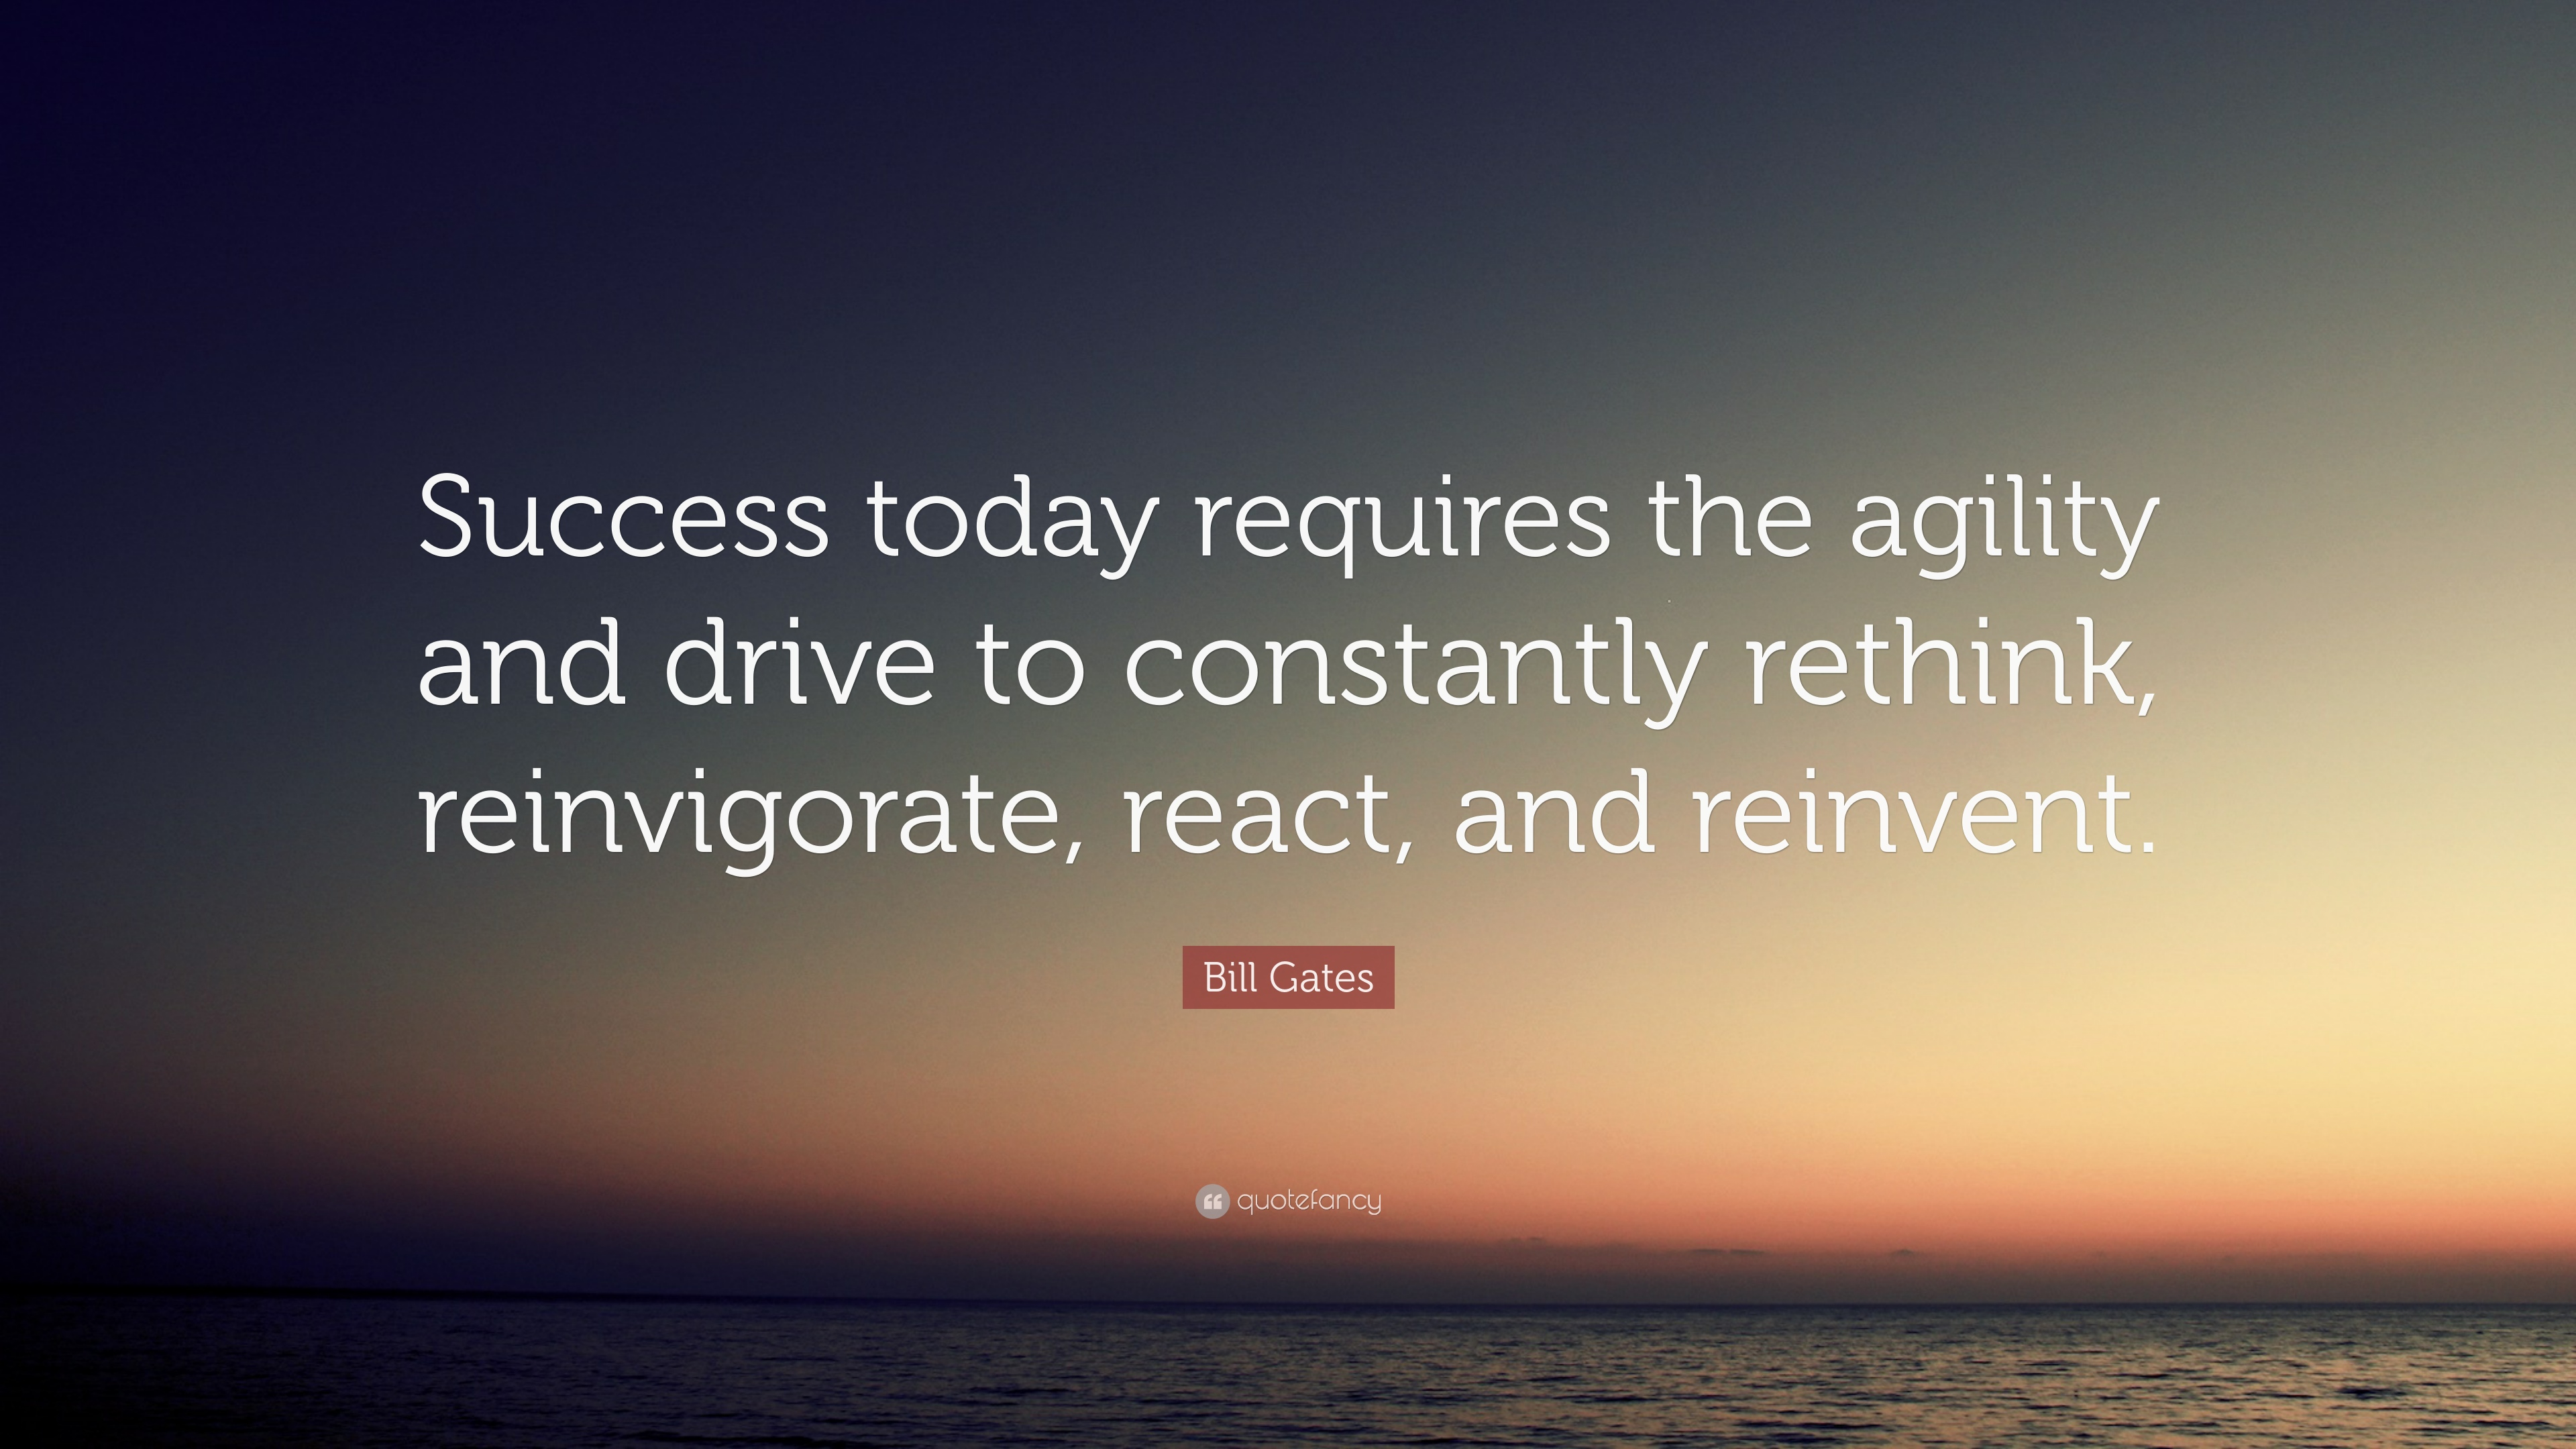 Napoleon Hill Quotes Wallpaper Bill Gates Quote Success Today Requires The Agility And